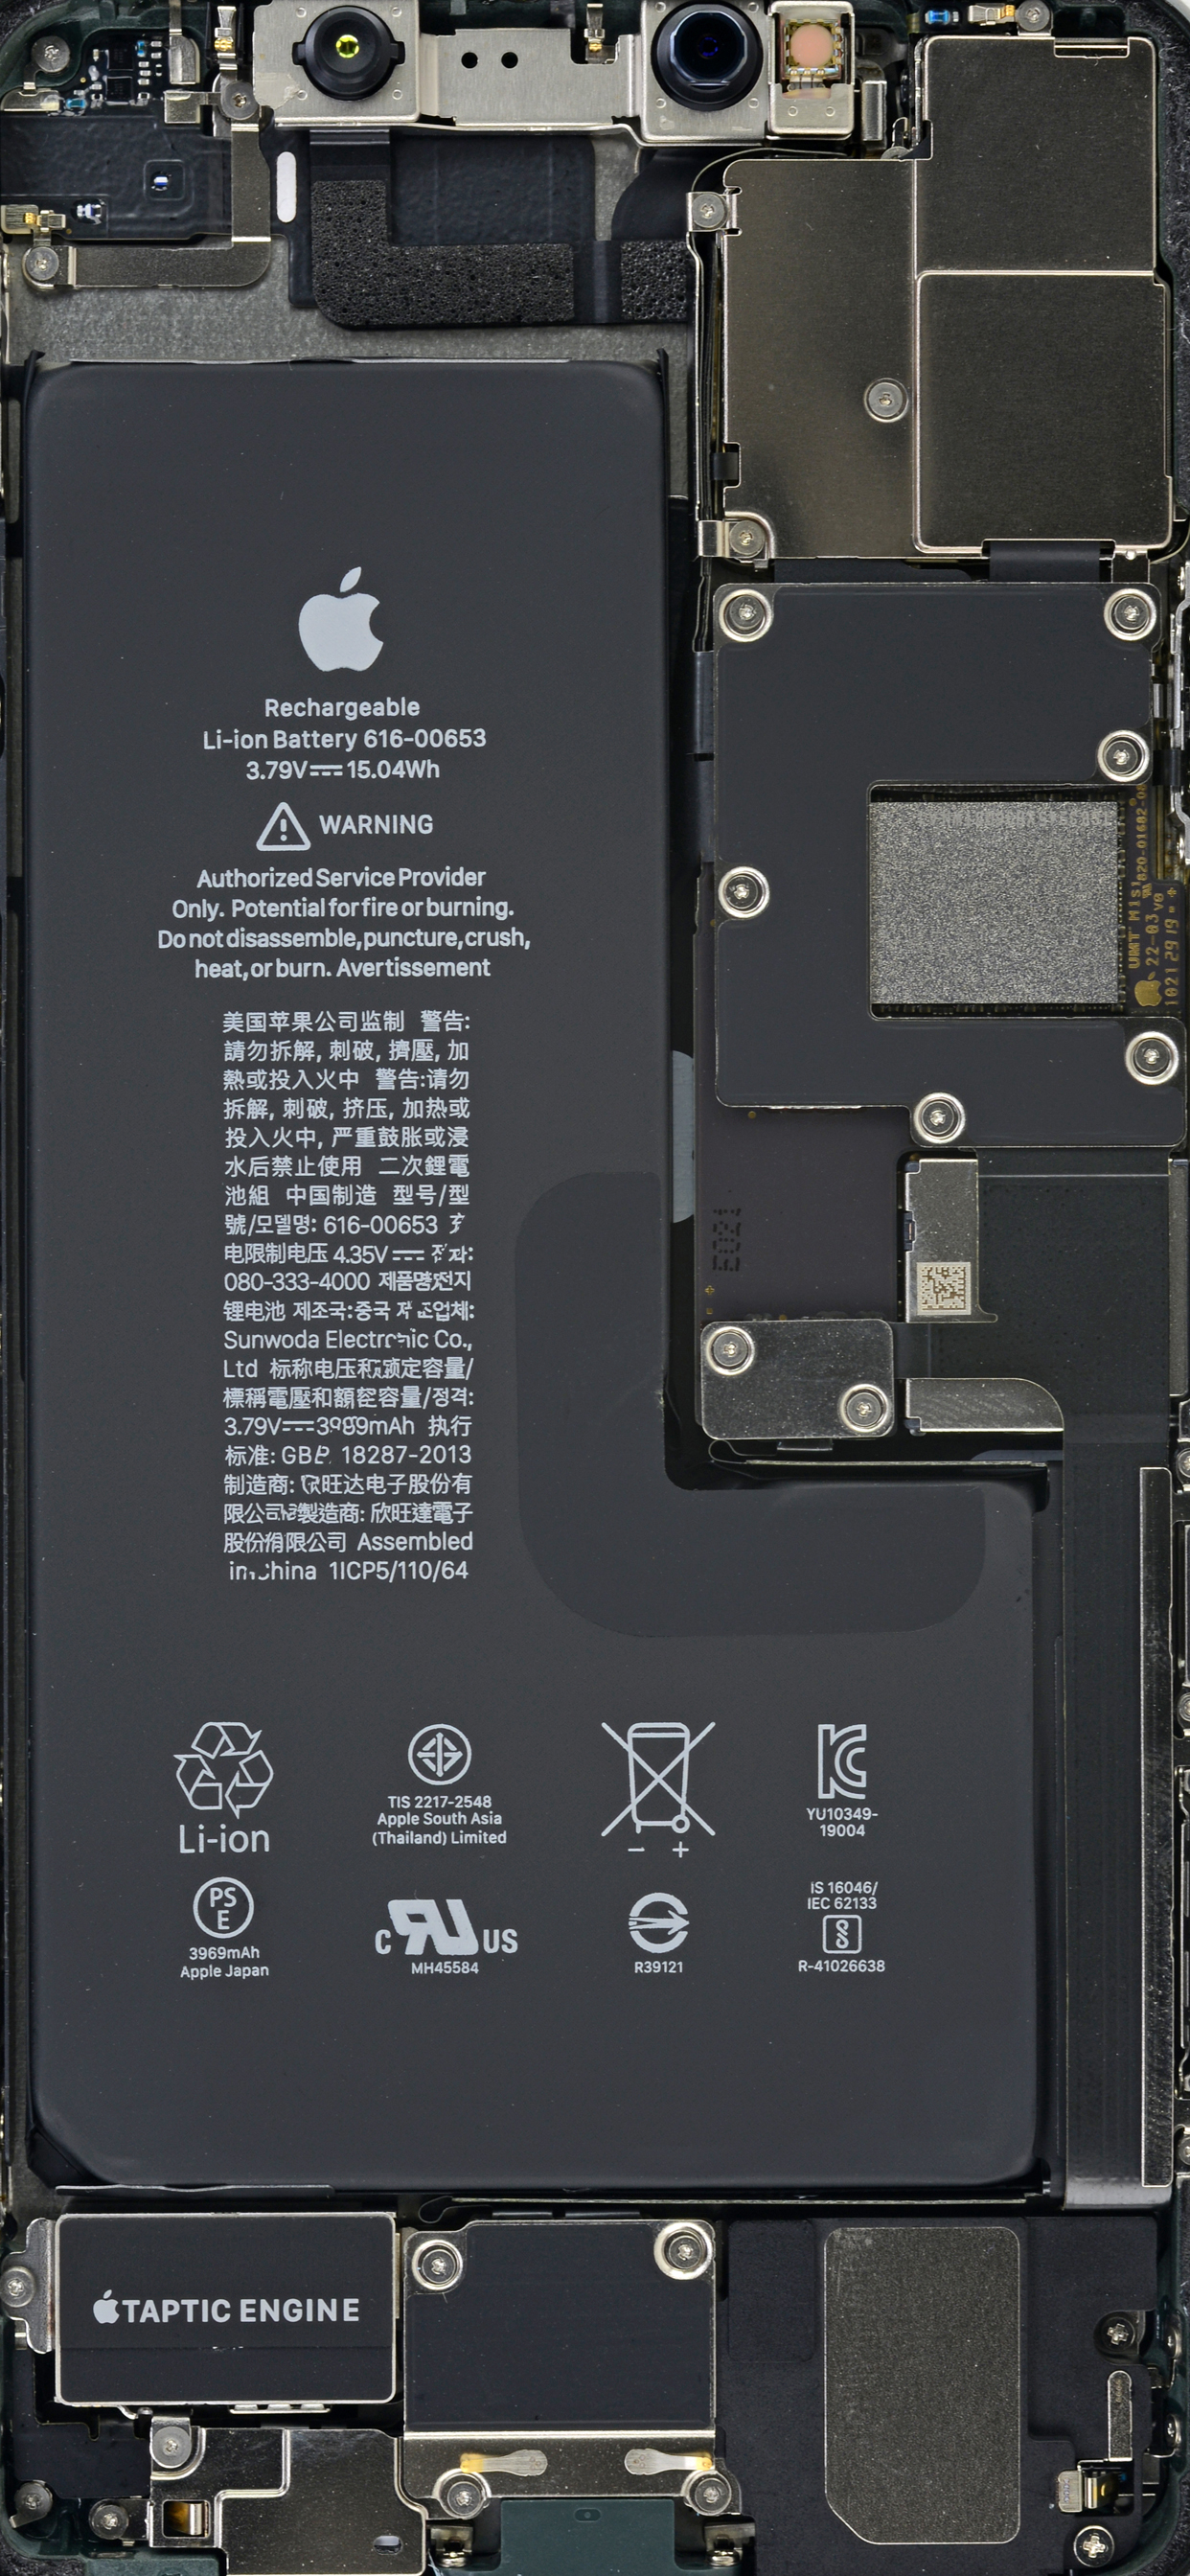 Iphone 11 Pro Max Internals Wallpaper Wallpapers Central